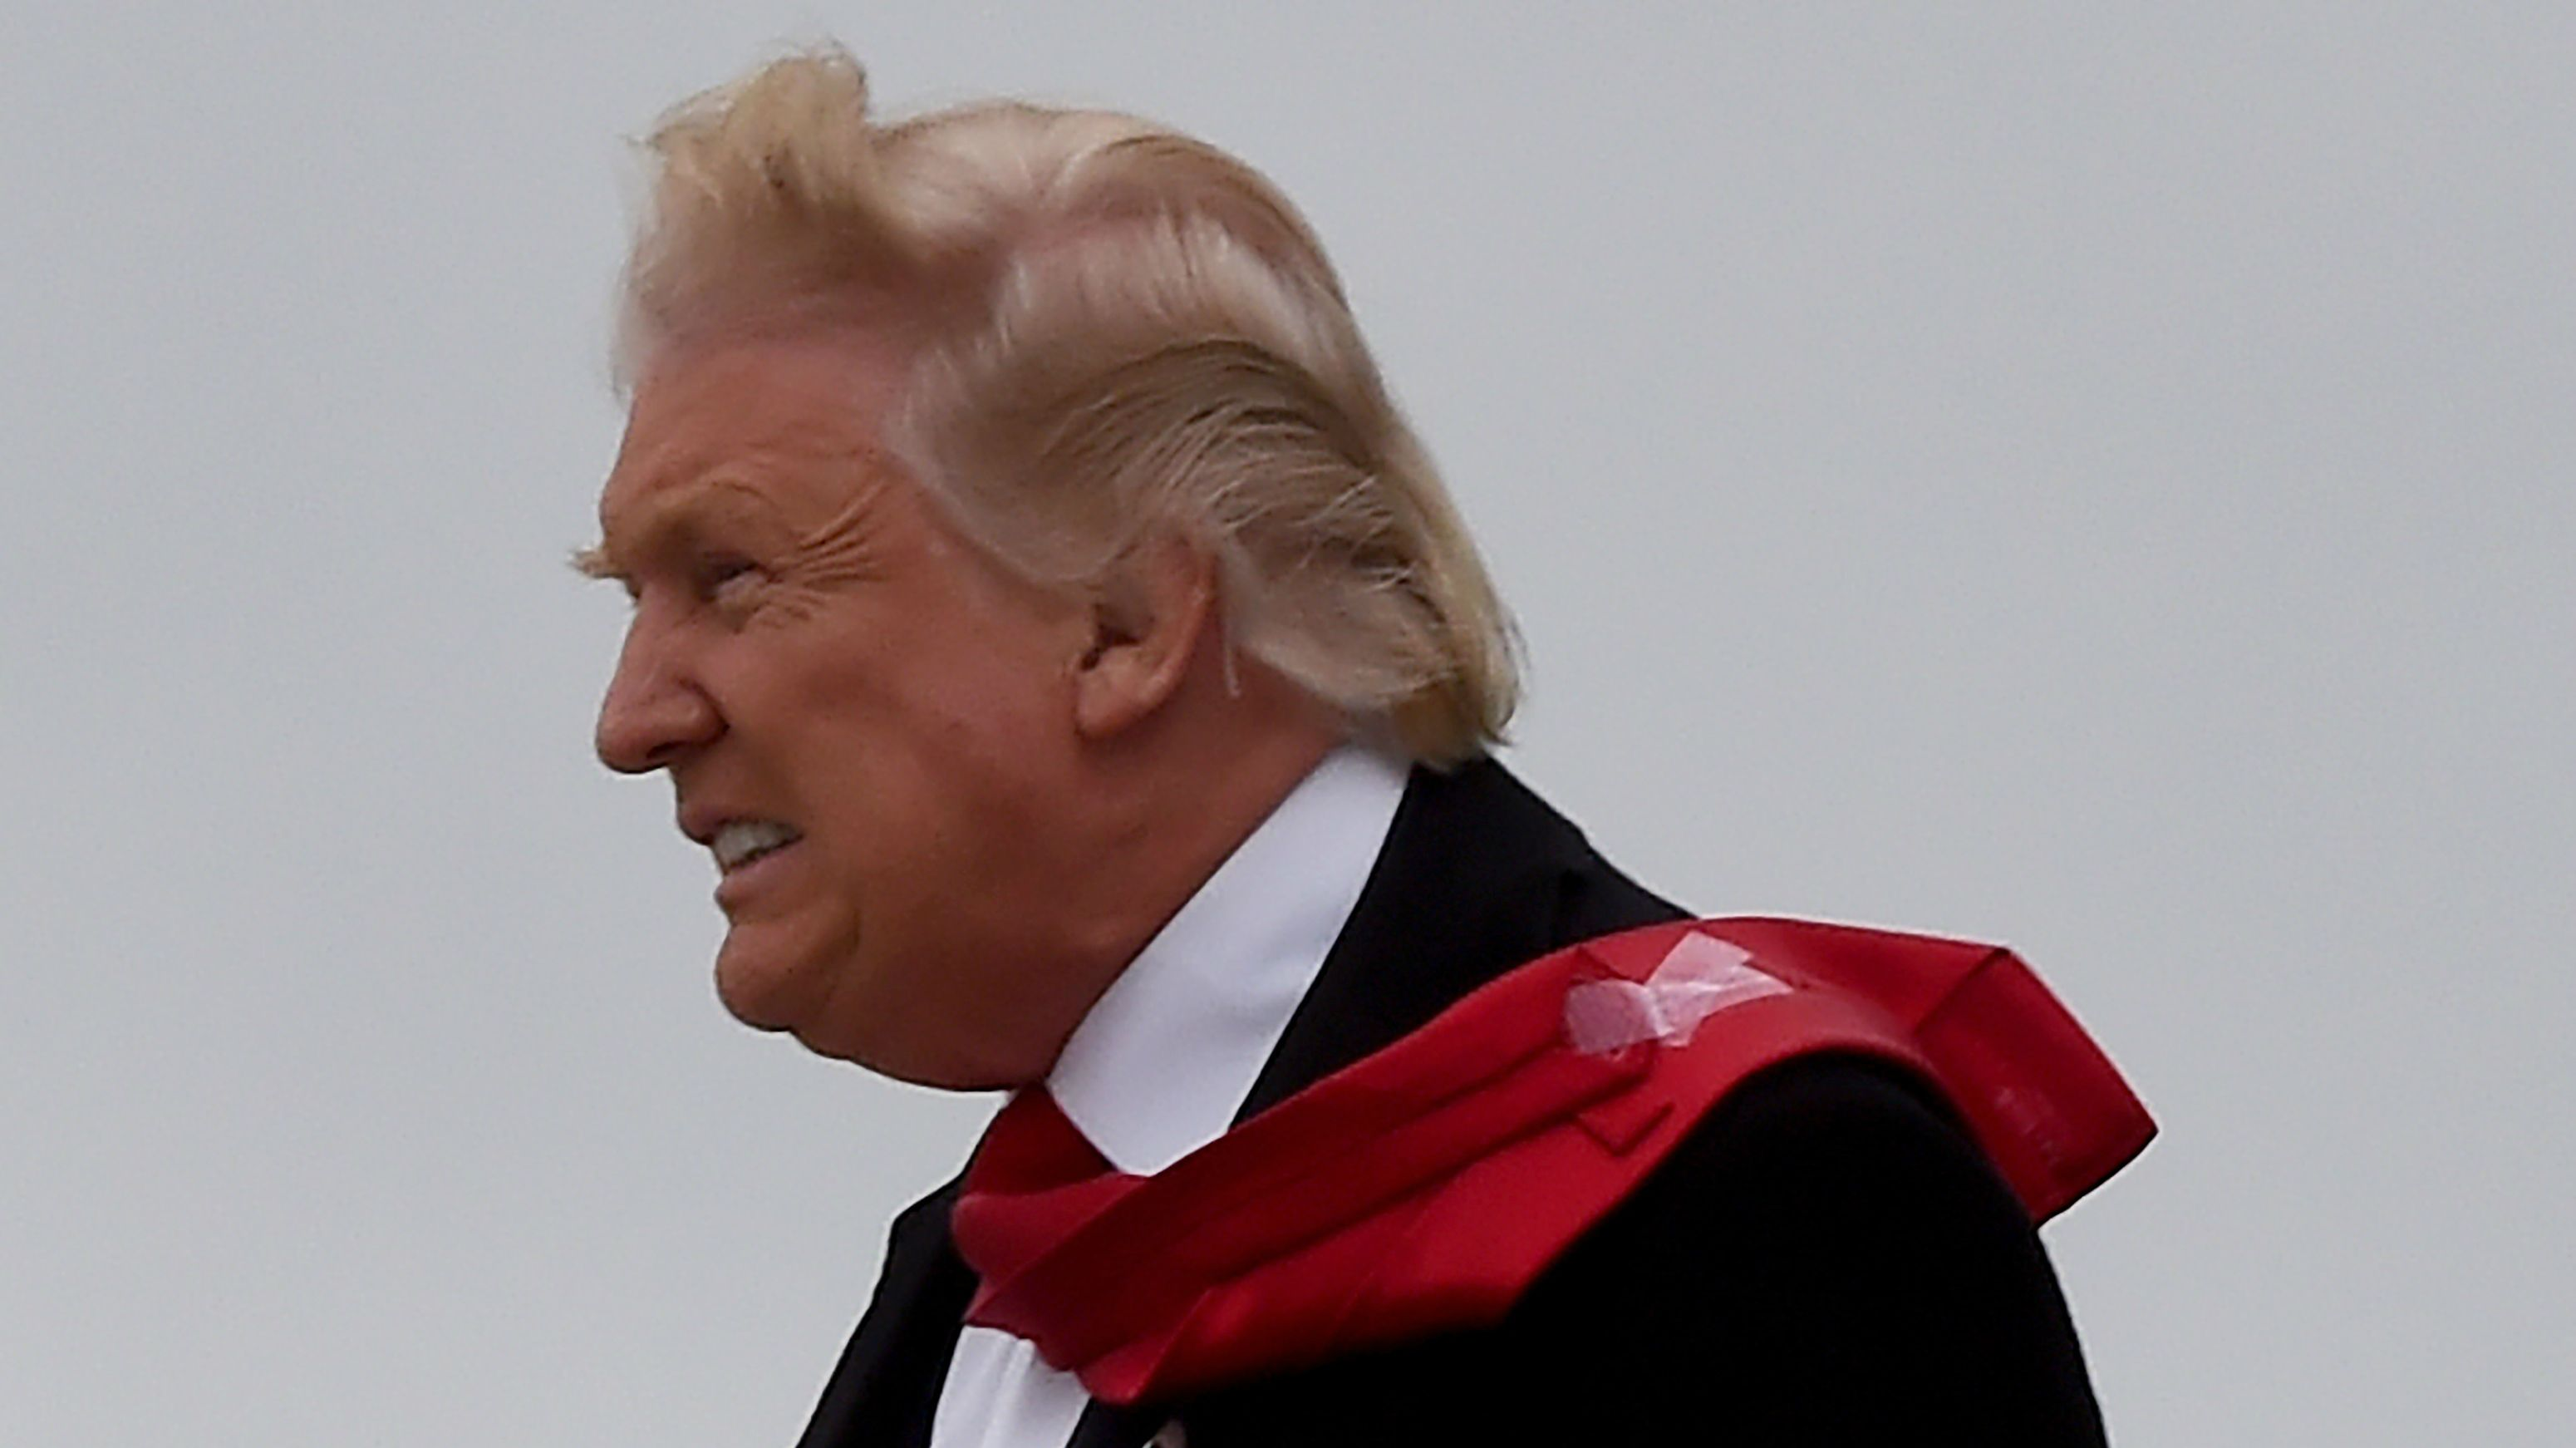 Donald Trump Tape Tie